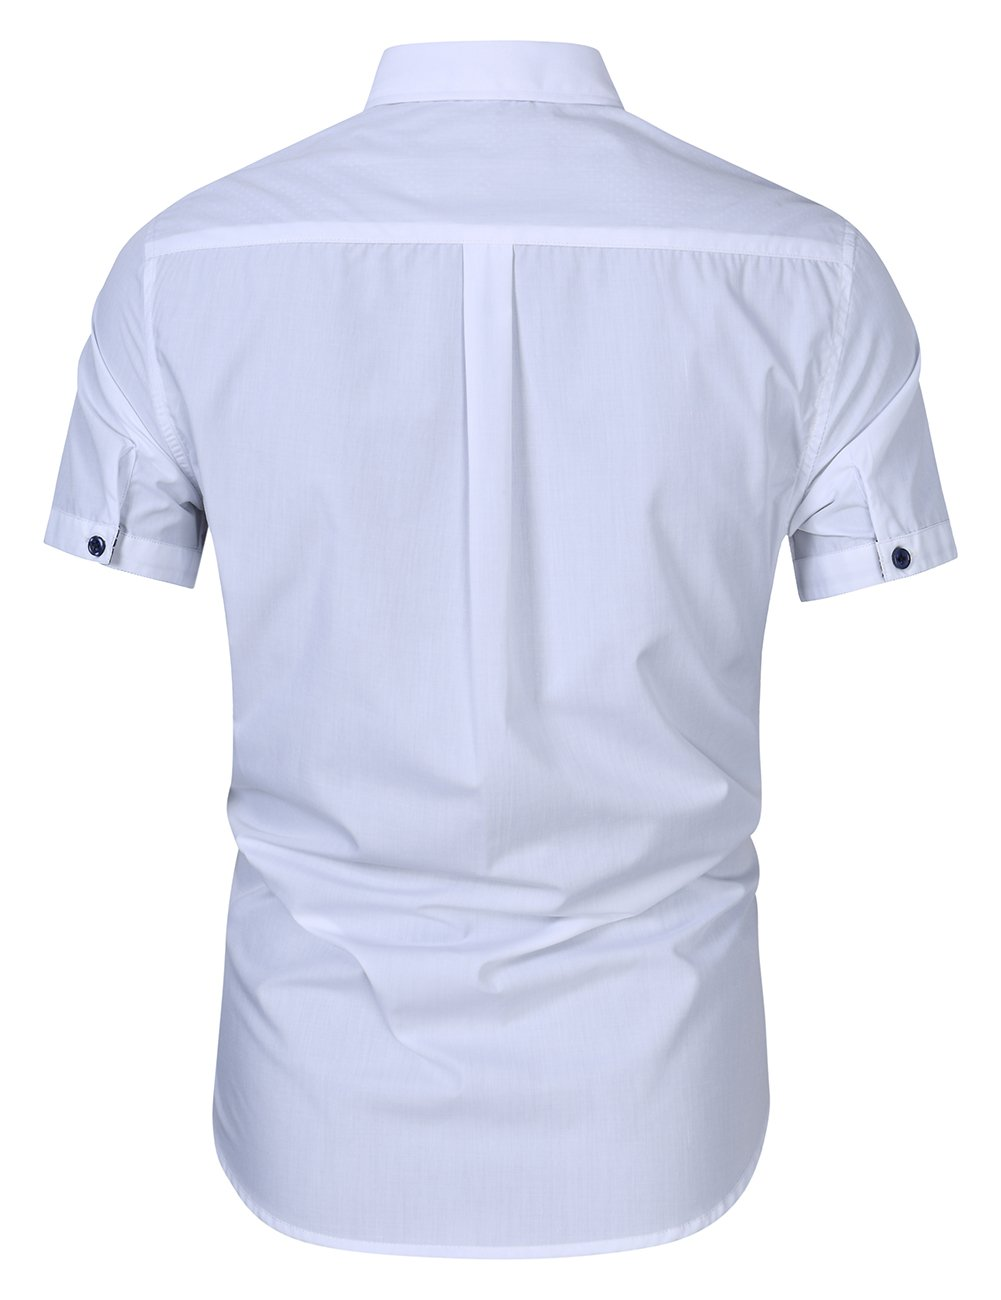 Kuulee Men's Casual Slim Fit Short Sleeve Button Down Business Shirt Cotton Dress Shirts White XXL by Kuulee (Image #3)